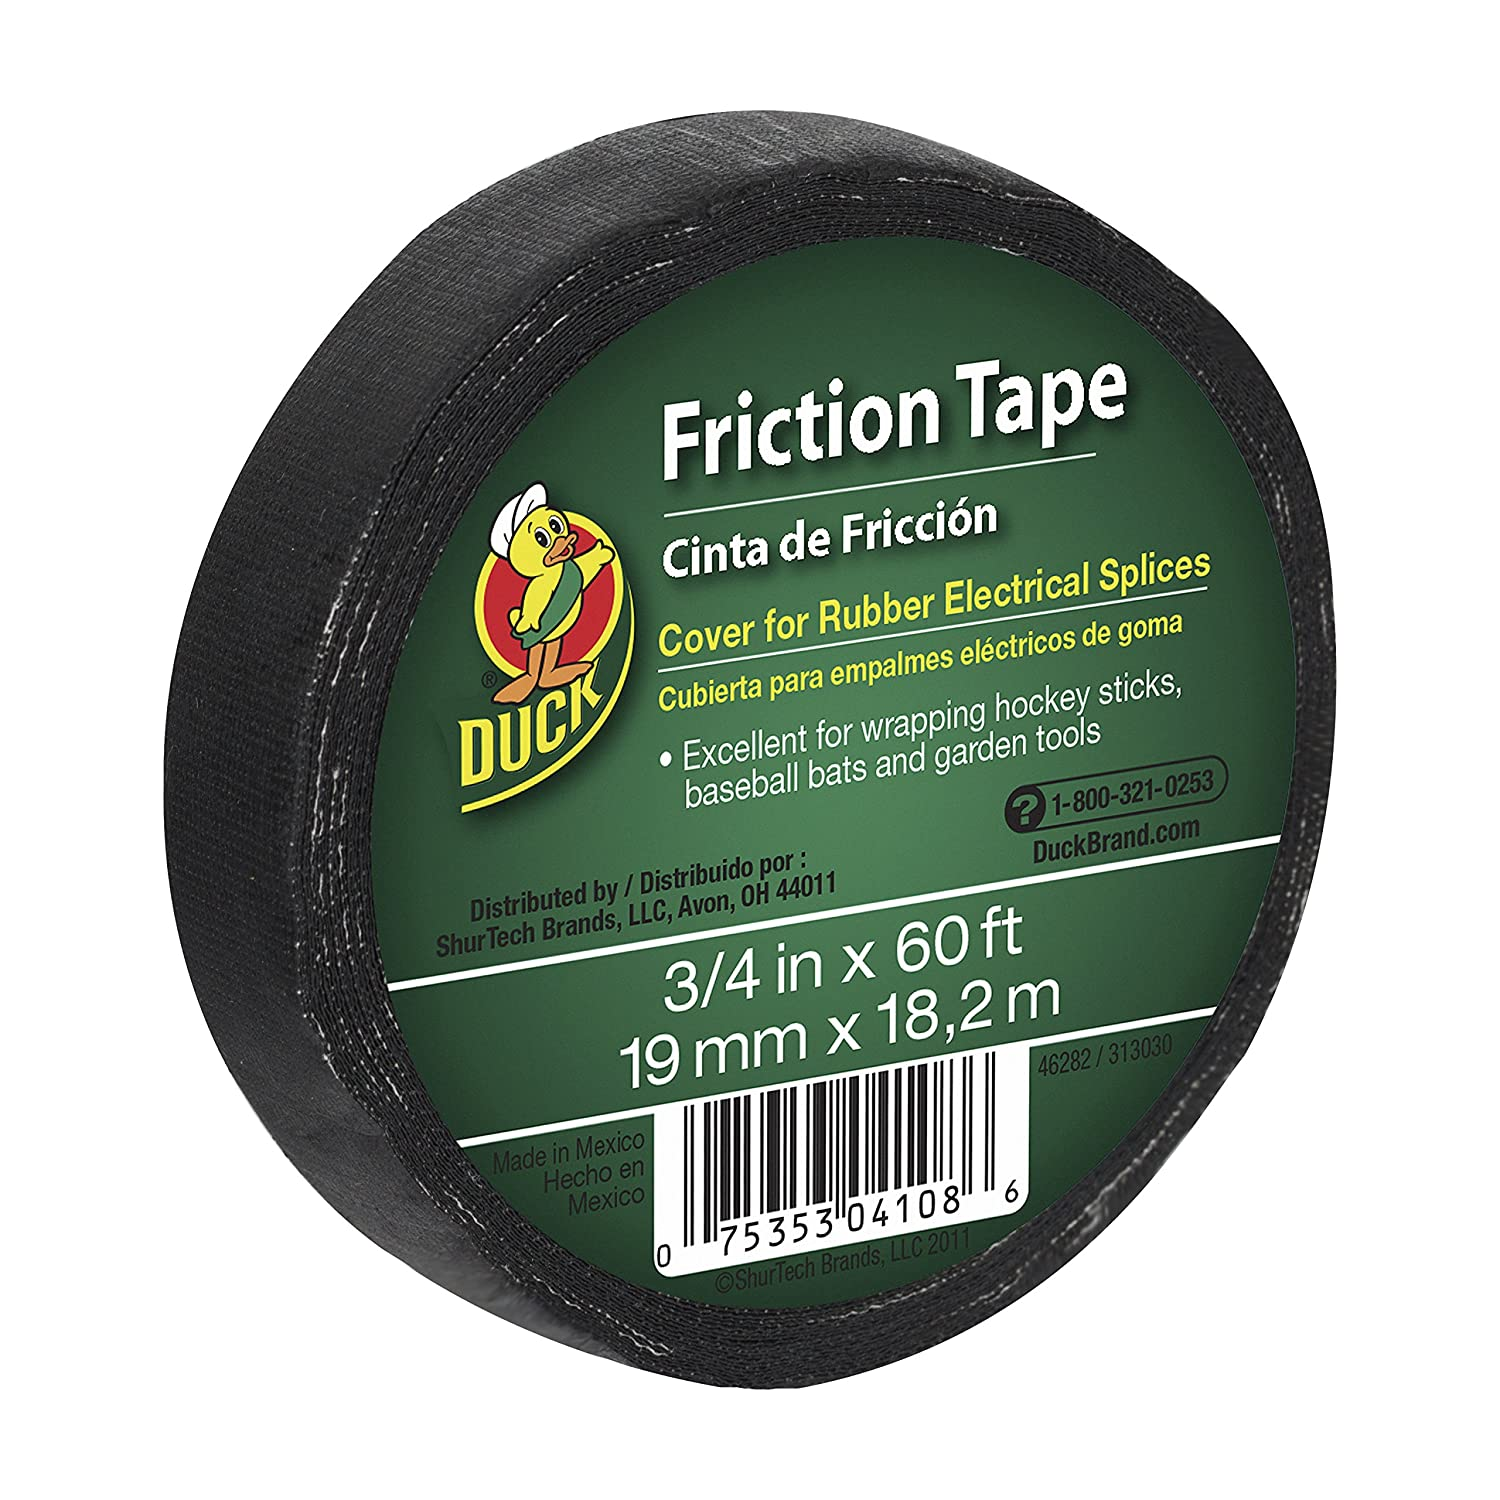 amazon com heat shrink tubing wiring connecting industrial duck brand 393150 friction tape 3 4 inch x 60 feet single roll black